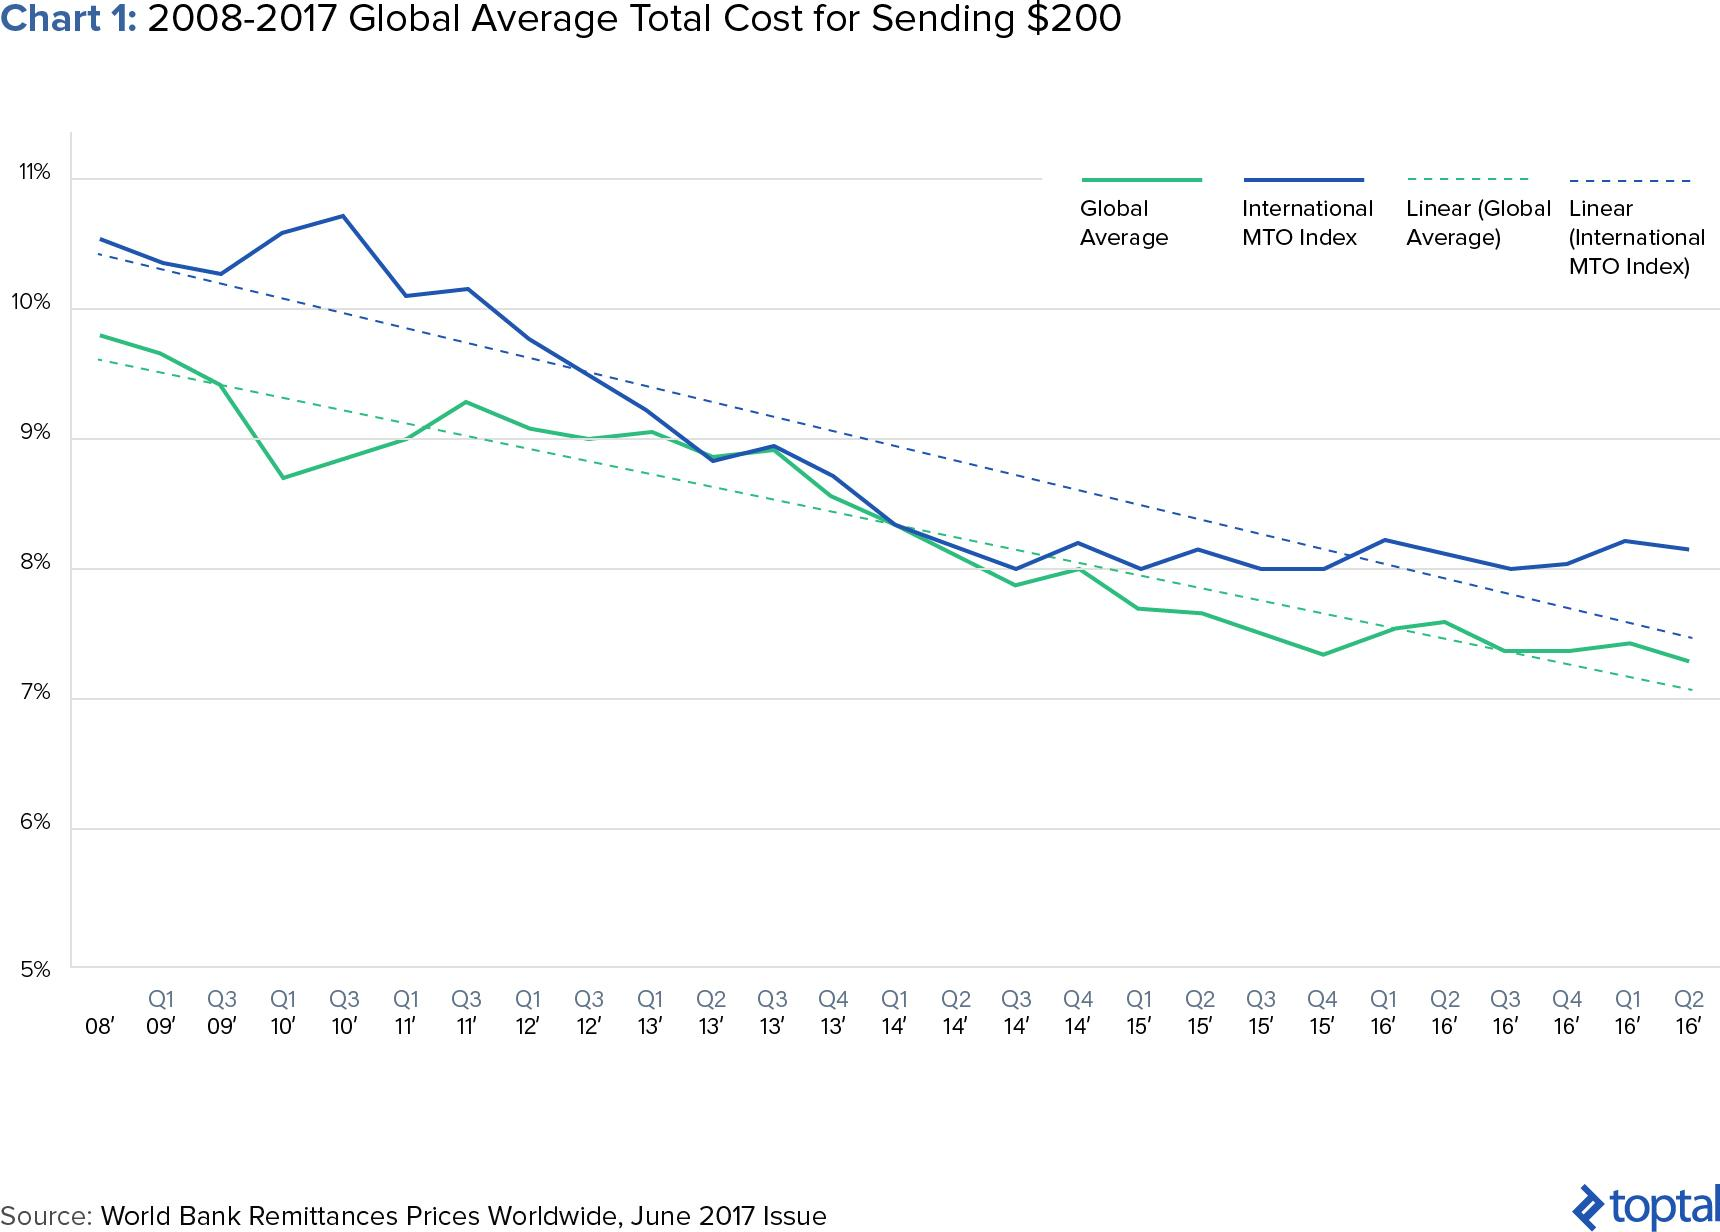 Chart 1: 2008-2017 Global Average Total Cost for Sending $200